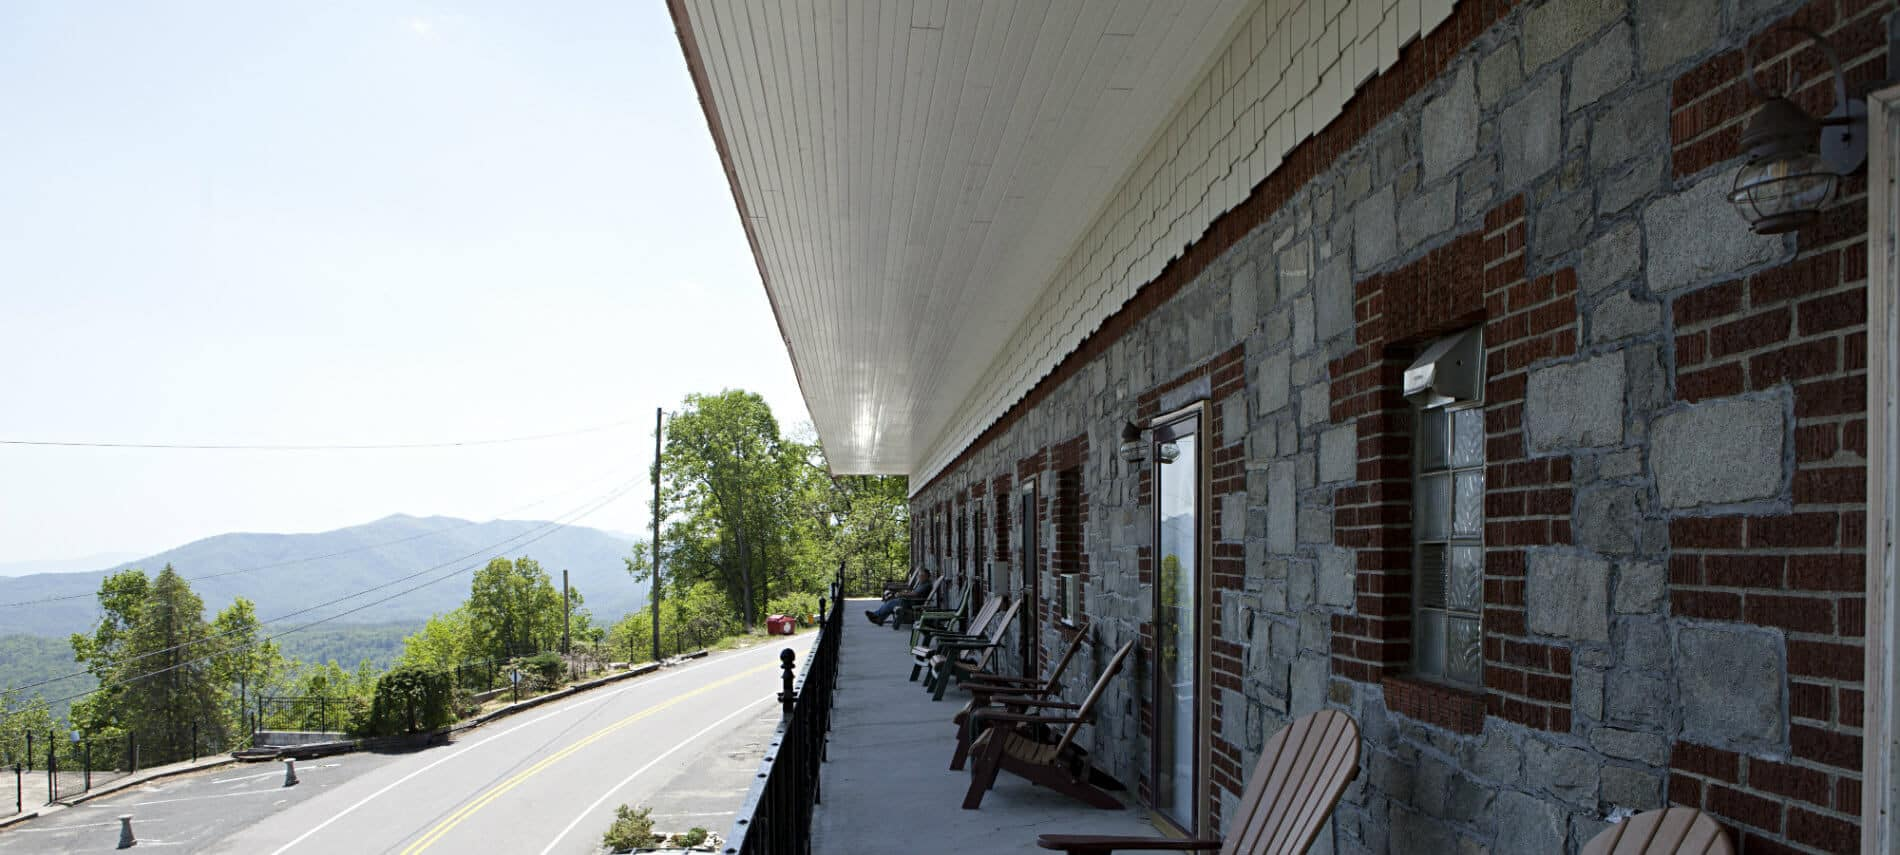 Balcony of the inn with stone and brick wall and a long row of adirondack chairs next to each guest room door